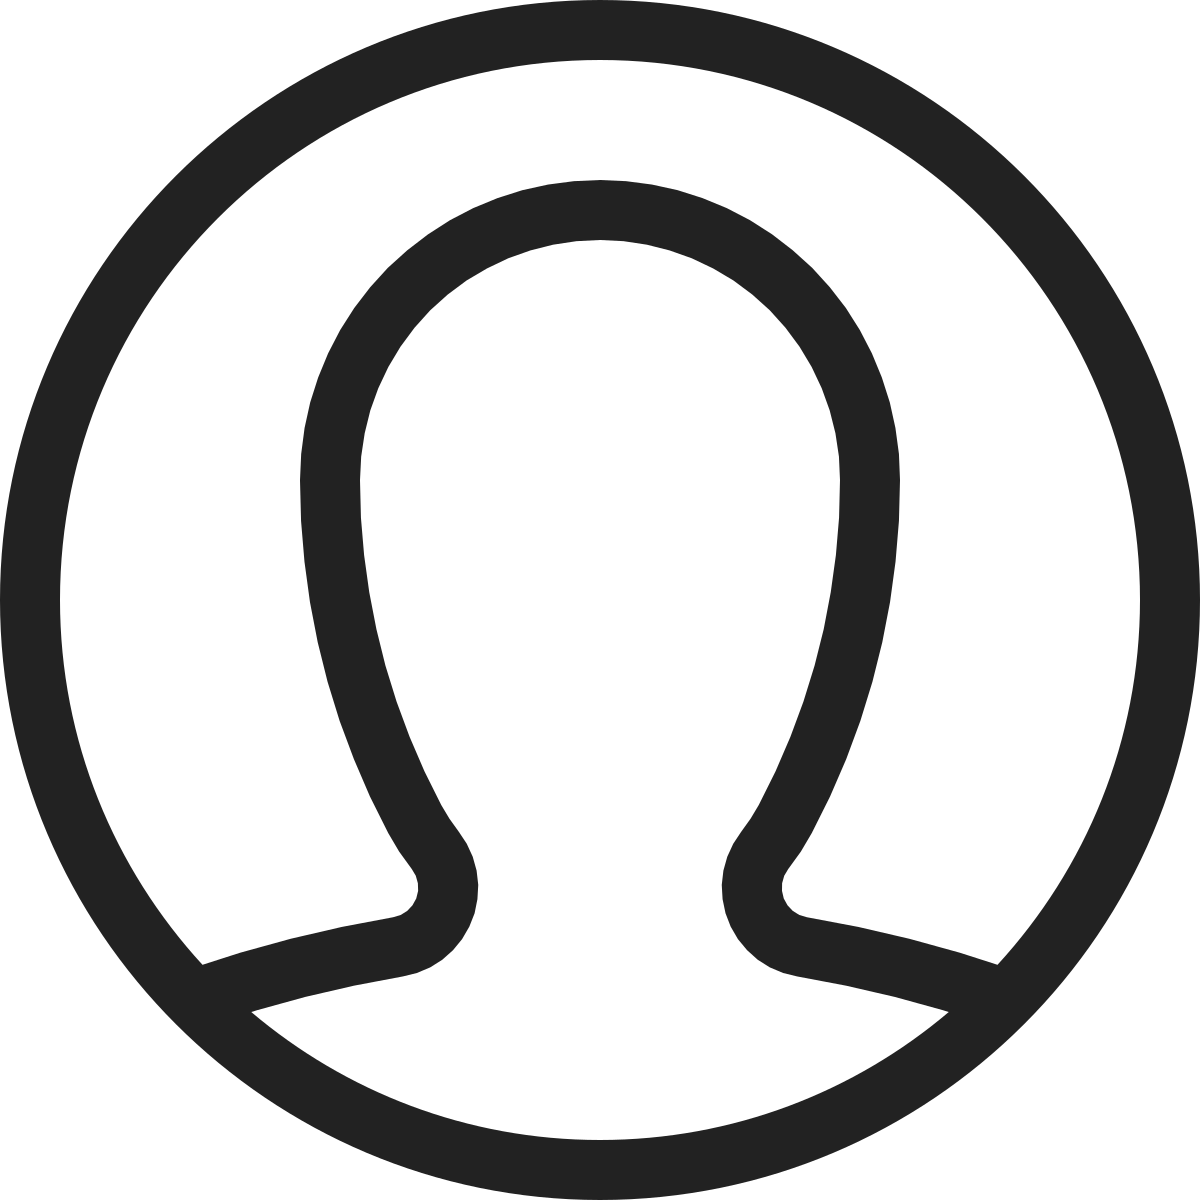 people  group  user  profile  circle  person icon icon